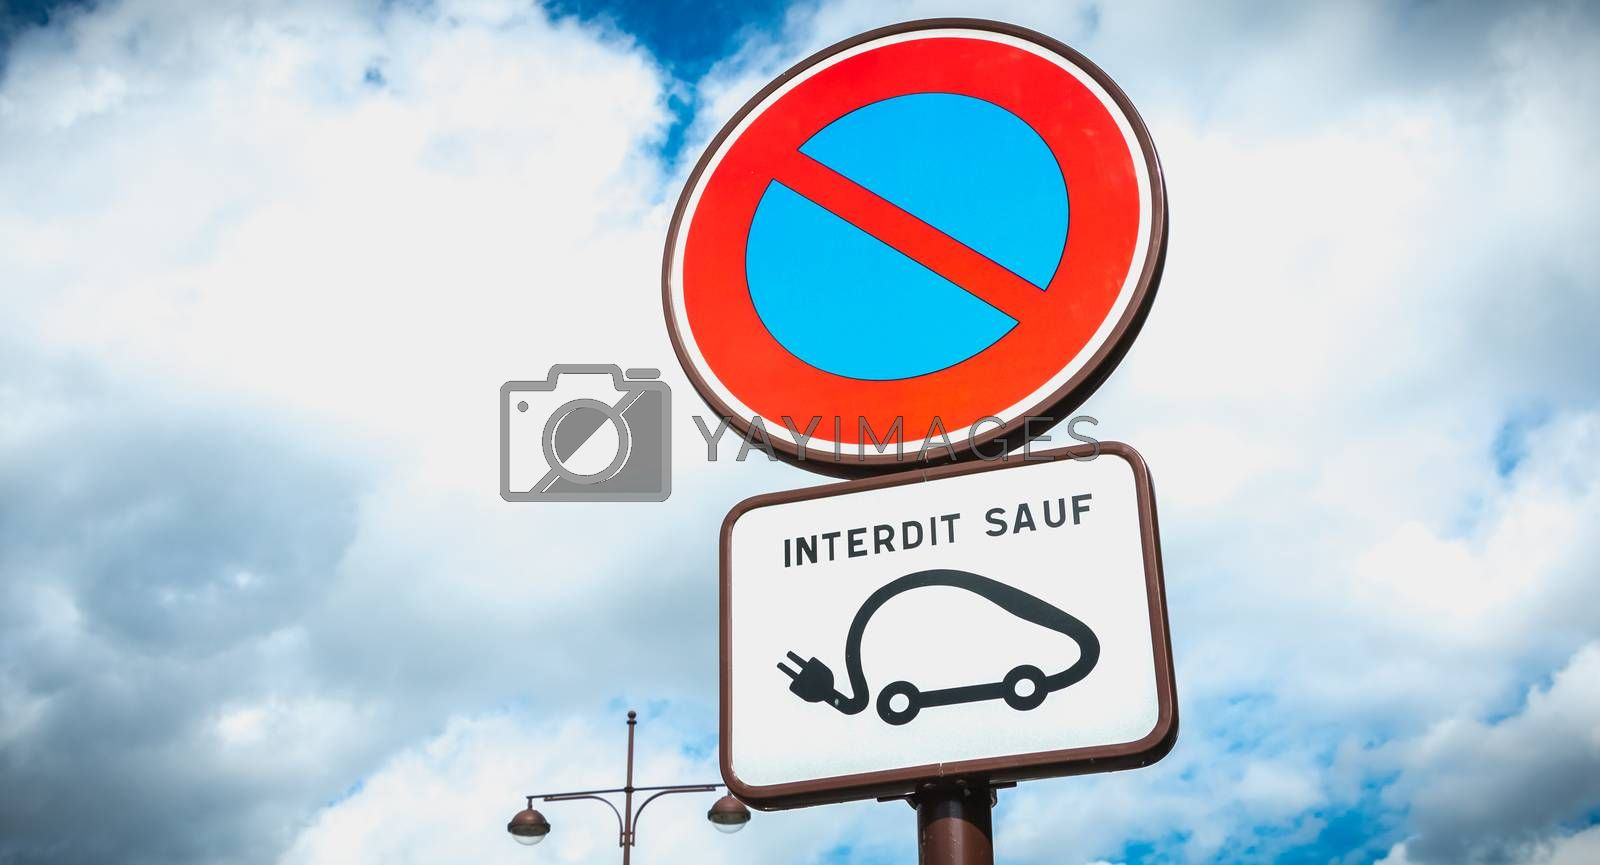 parking prohibition sign except electric vehicle in France